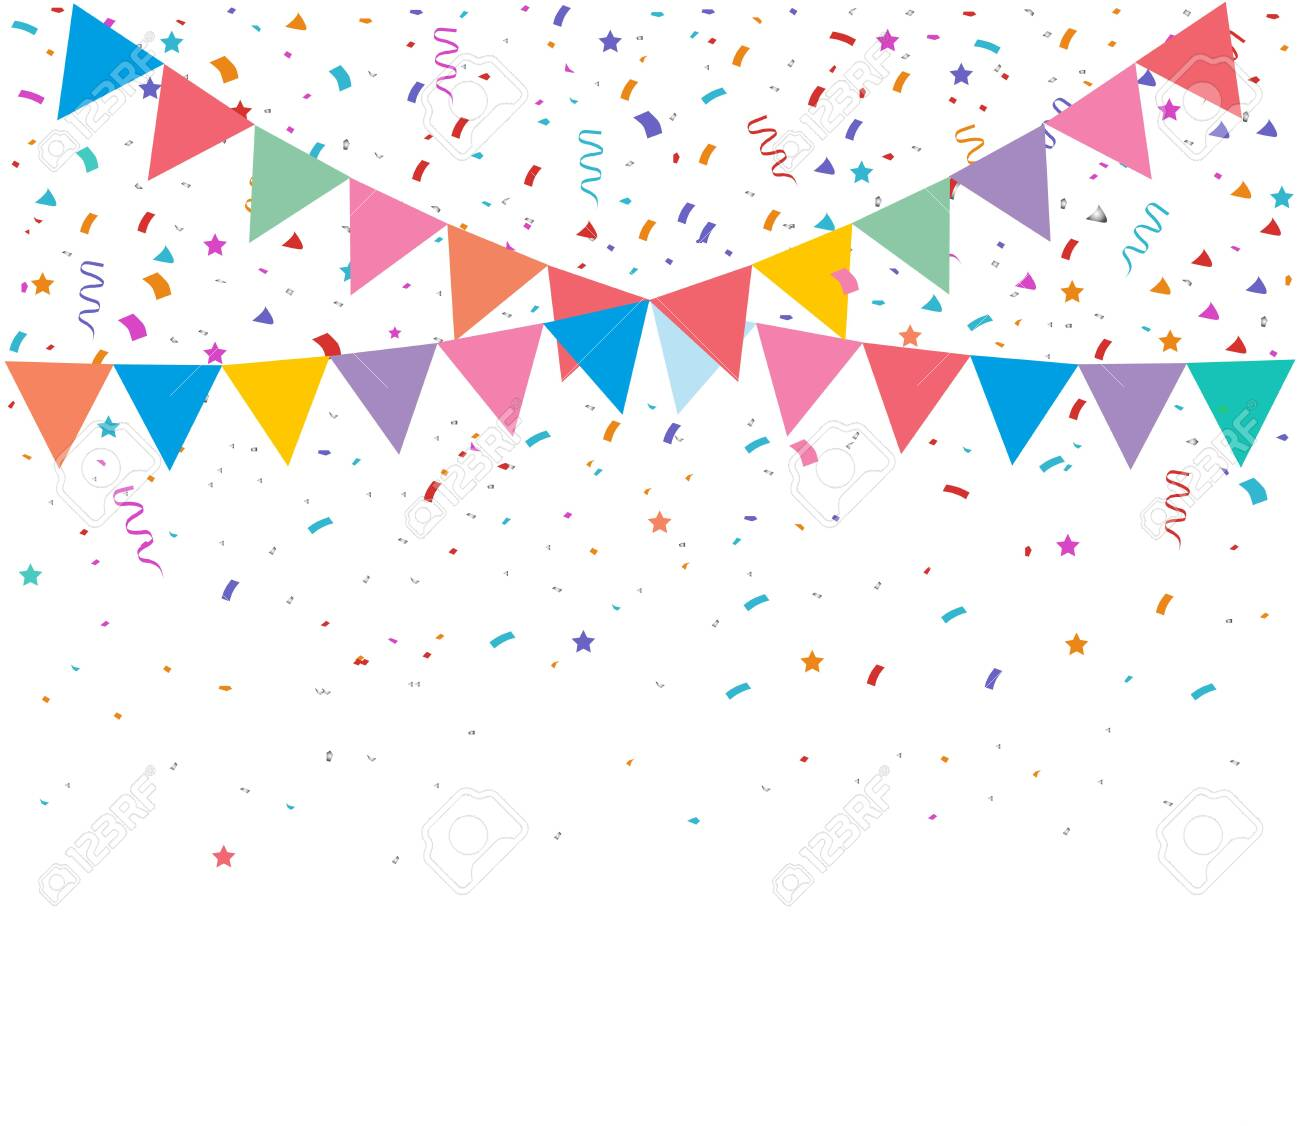 Colorful bright confetti isolated on transparent background. Festive vector illustration - 137122253